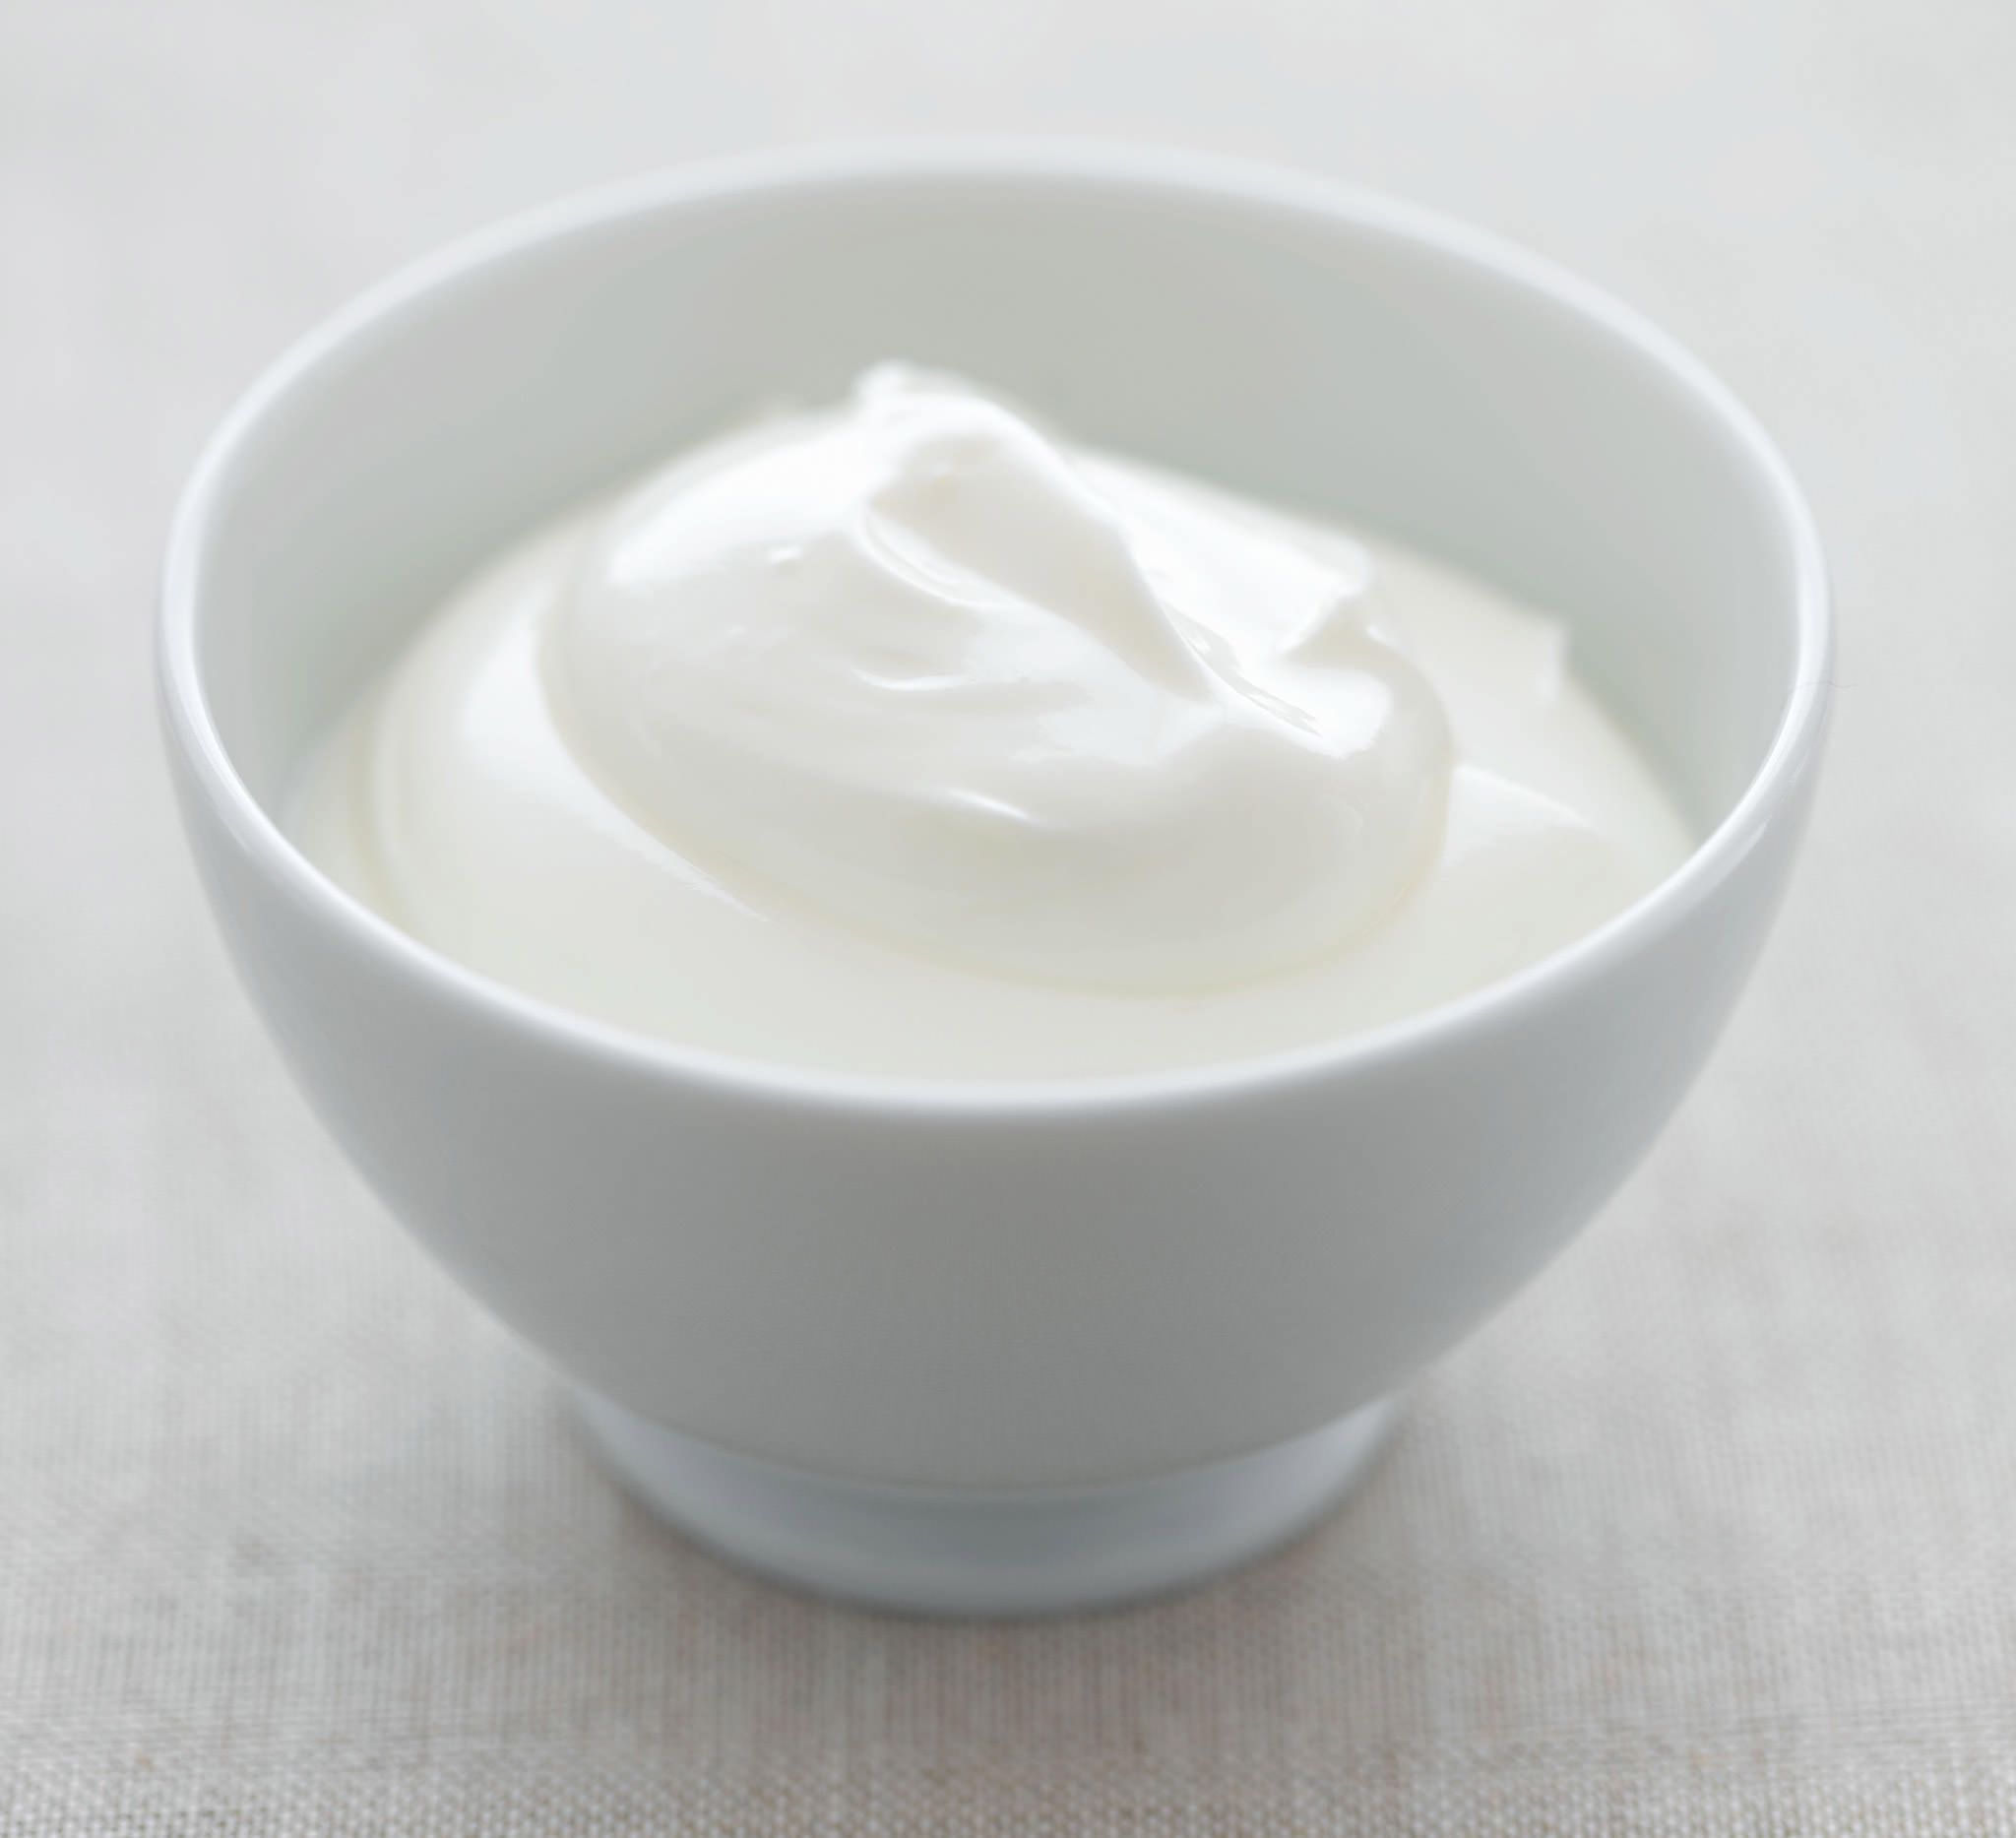 yogurt in white ceramic bowl with spoon